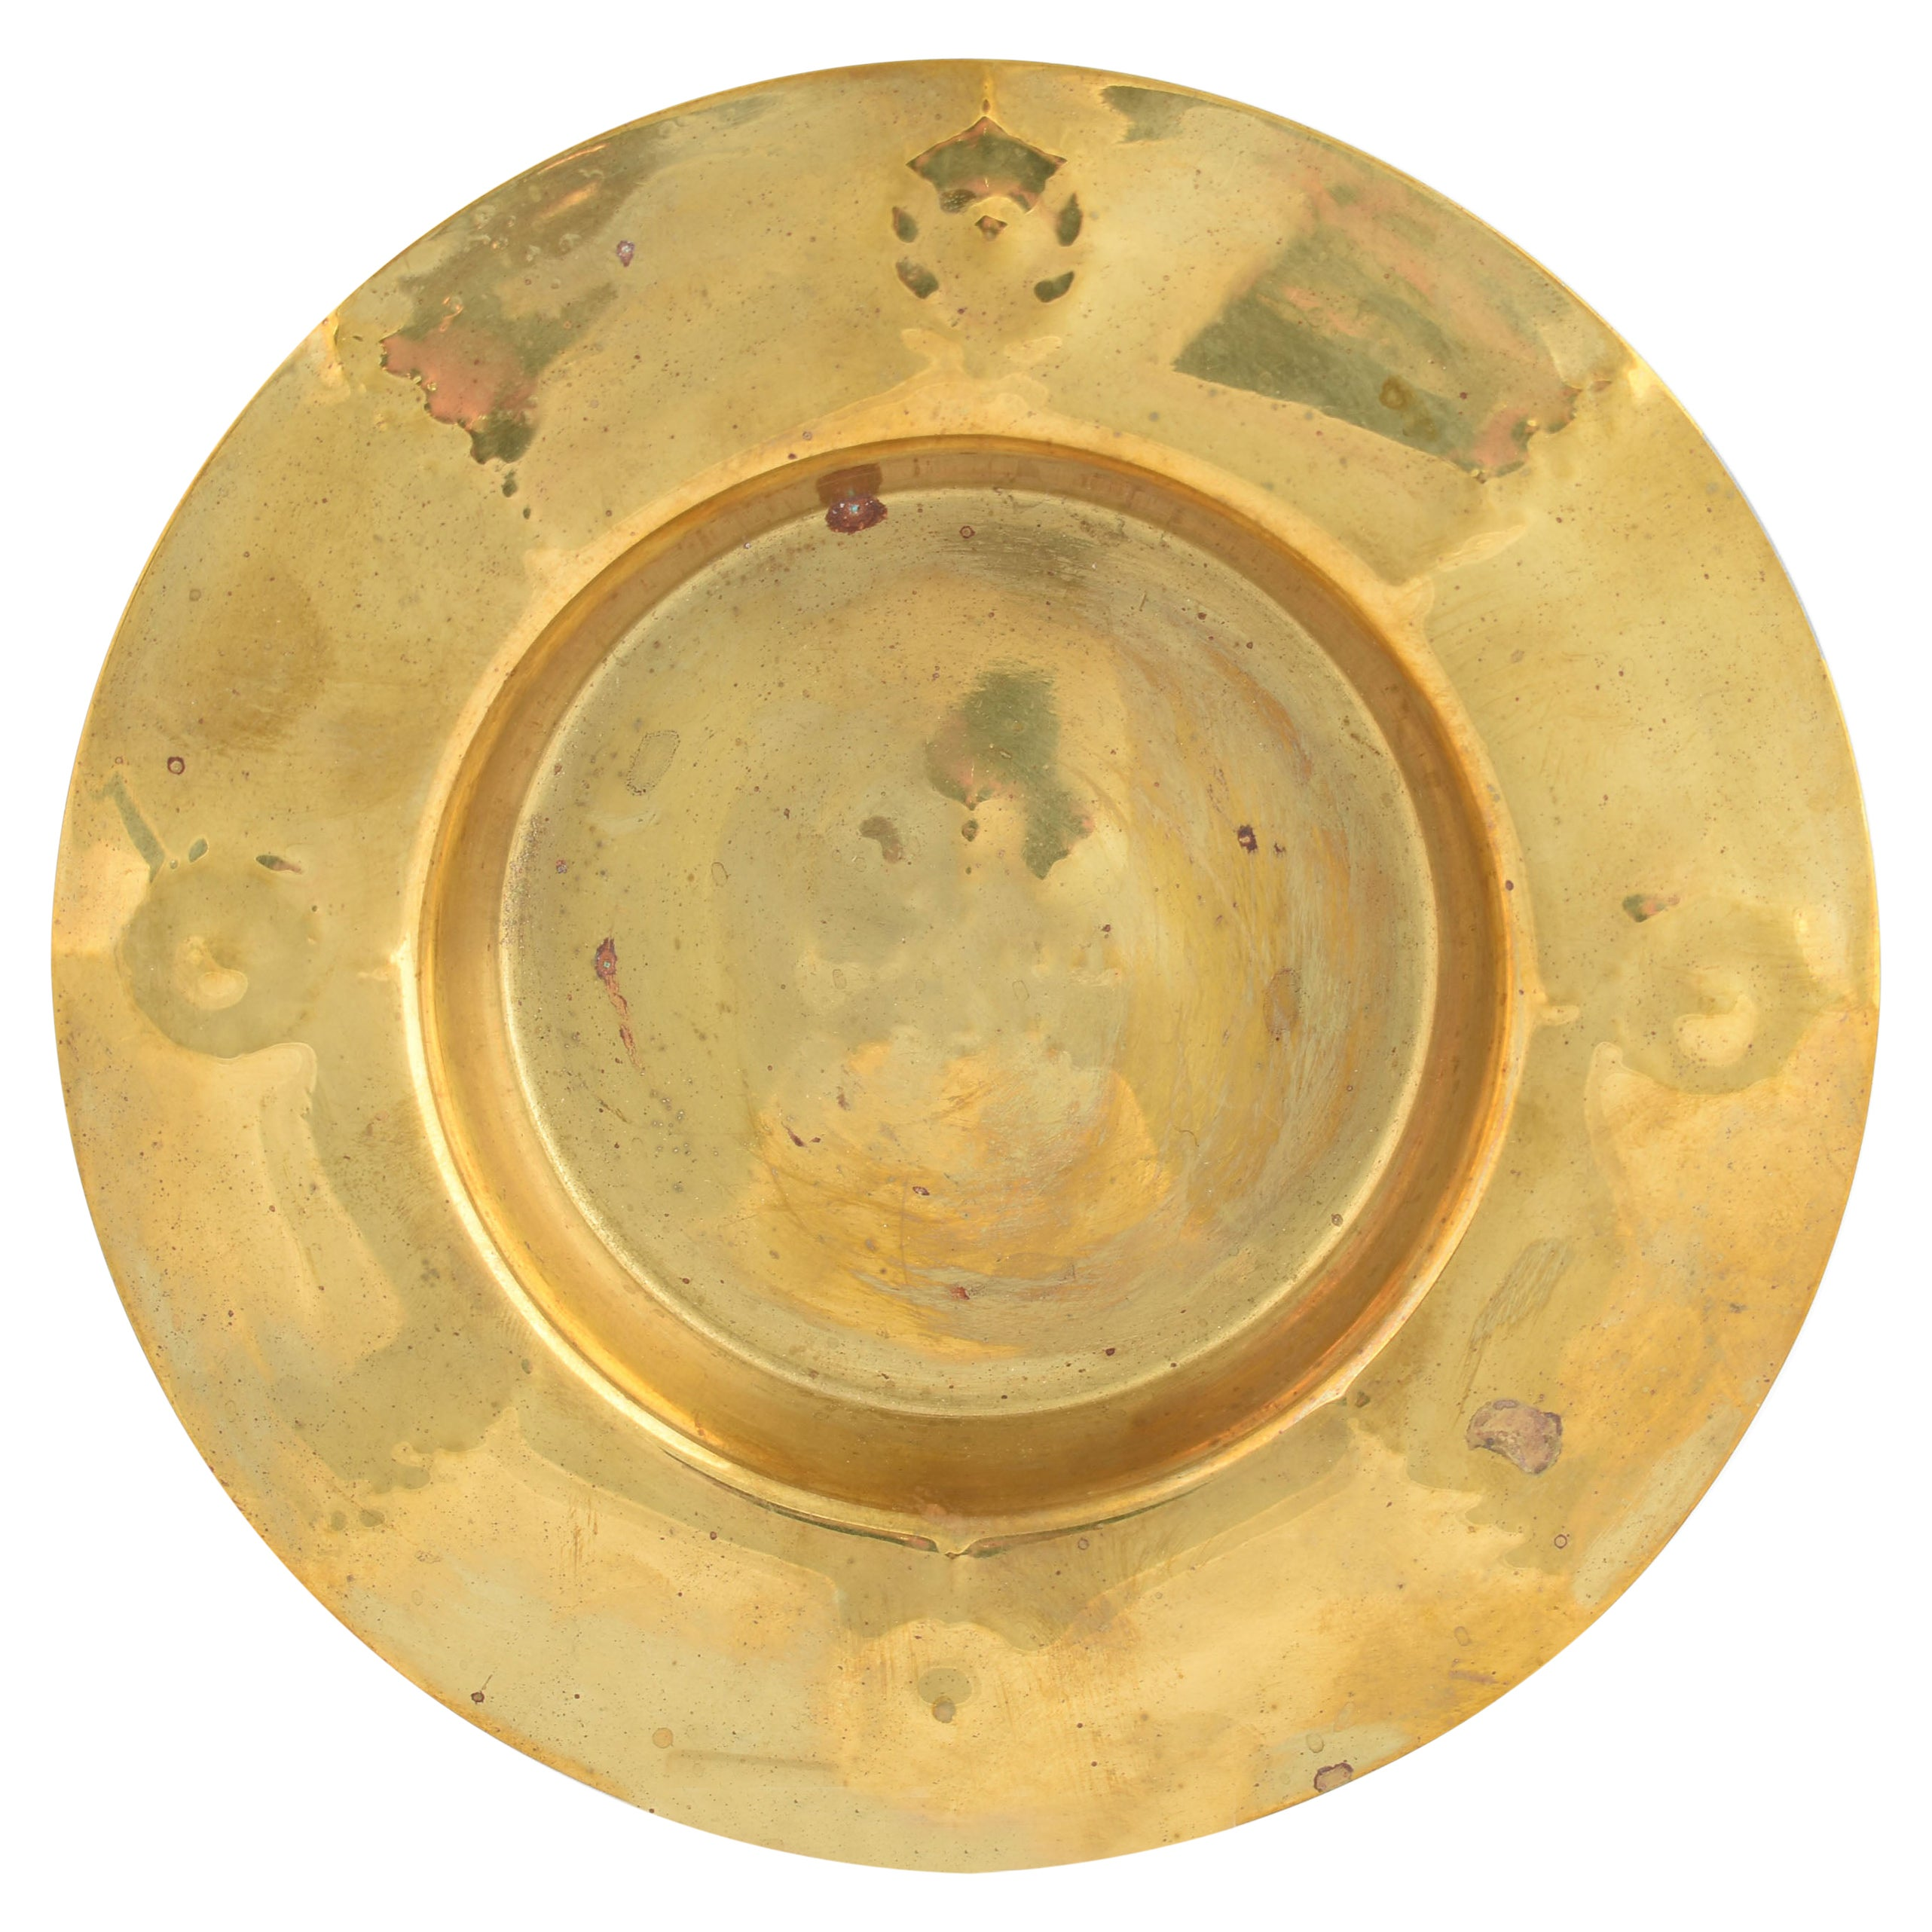 Vintage Art Deco Brass Plate by Albert Kahlbrandt, Germany, 1920s